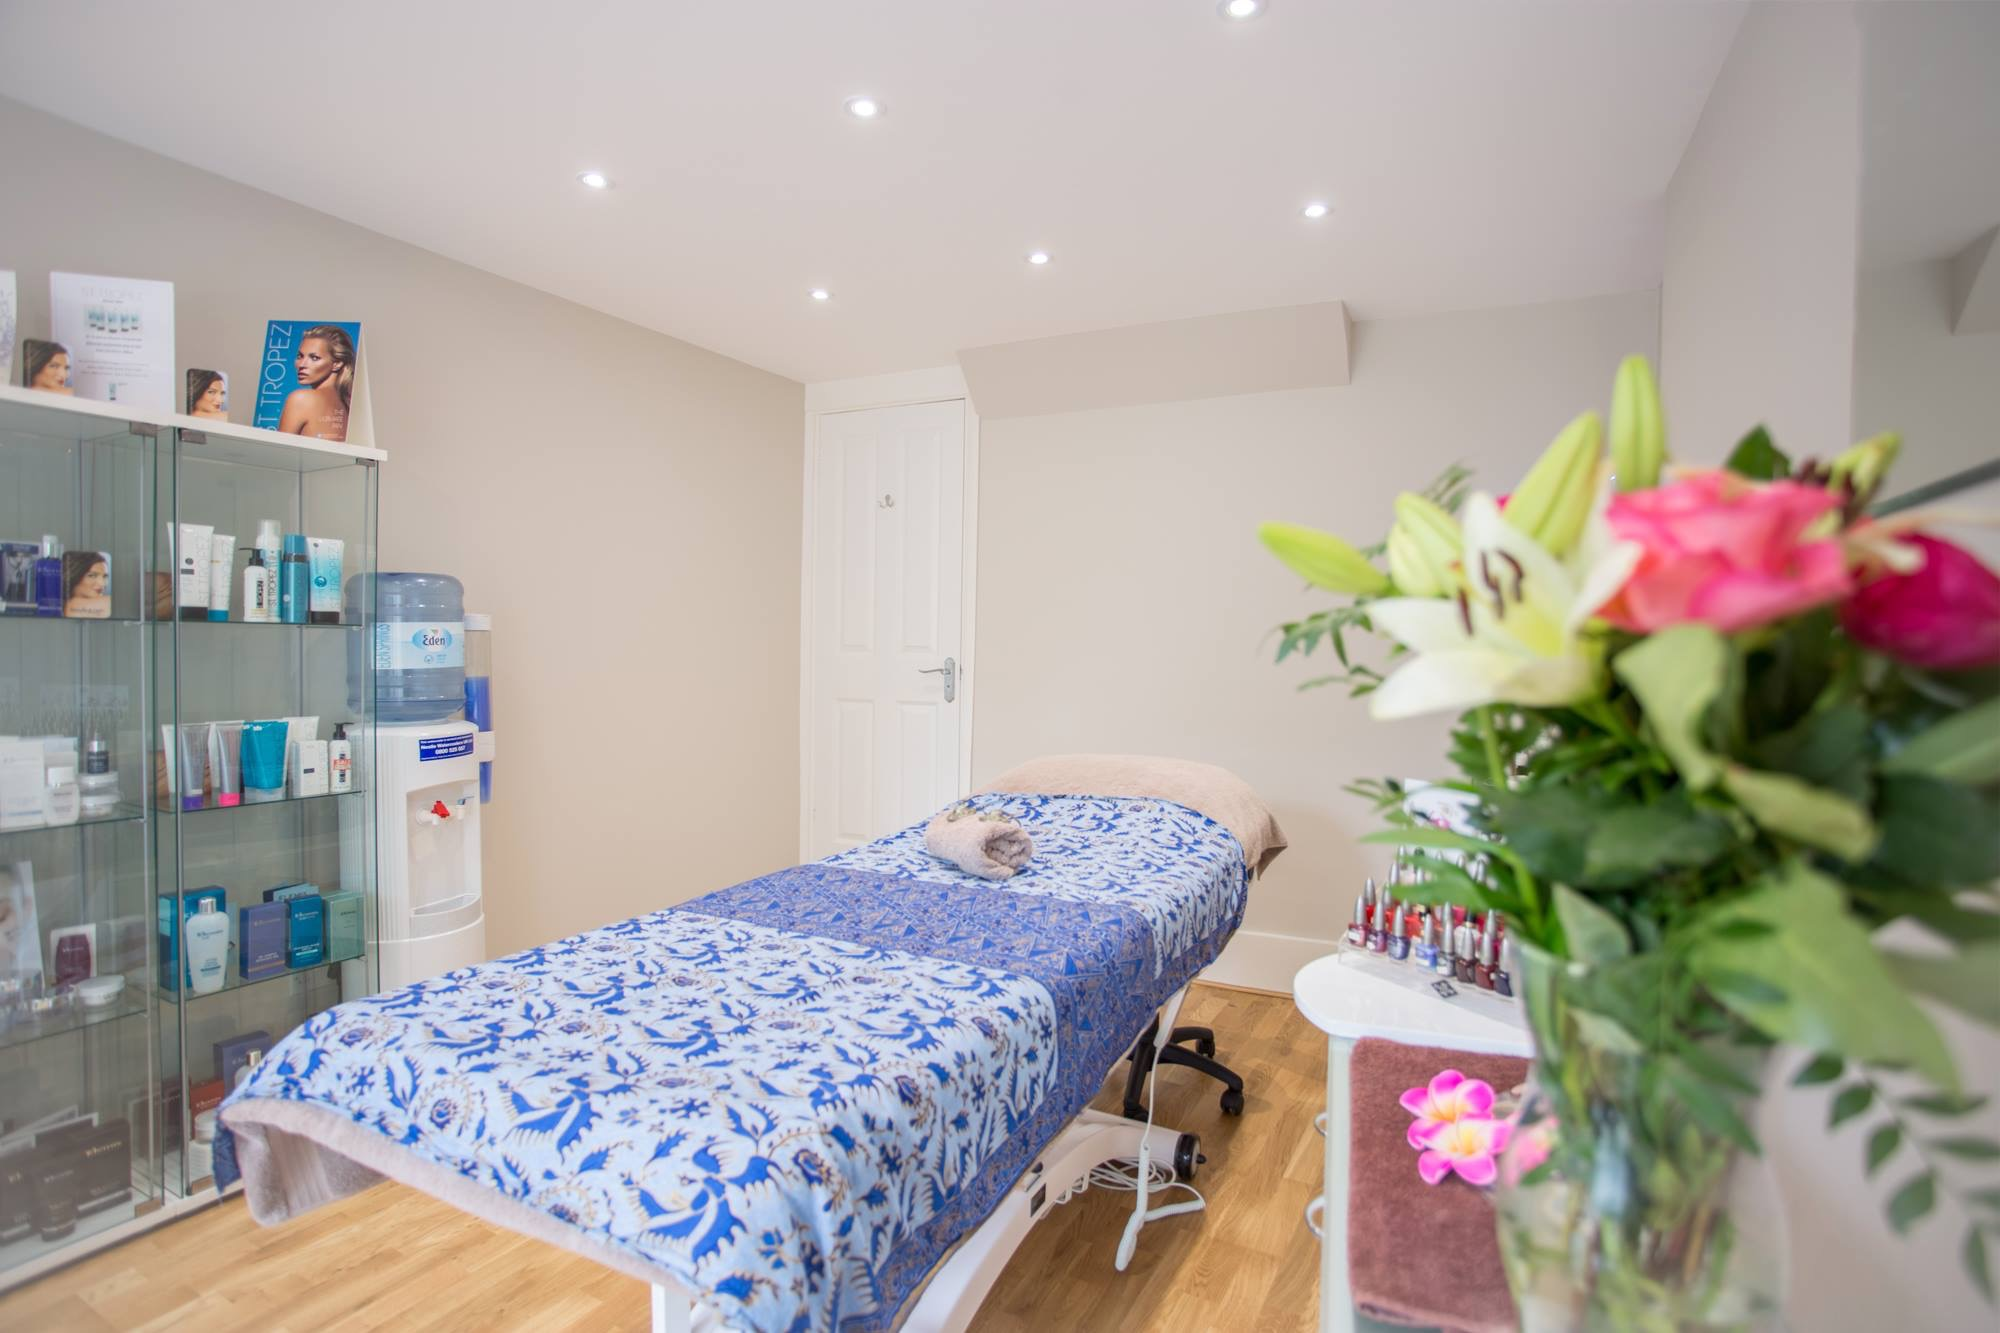 Salon Interior-Beauty Salon Great Missenden-Oasis Health & Beauty Spa